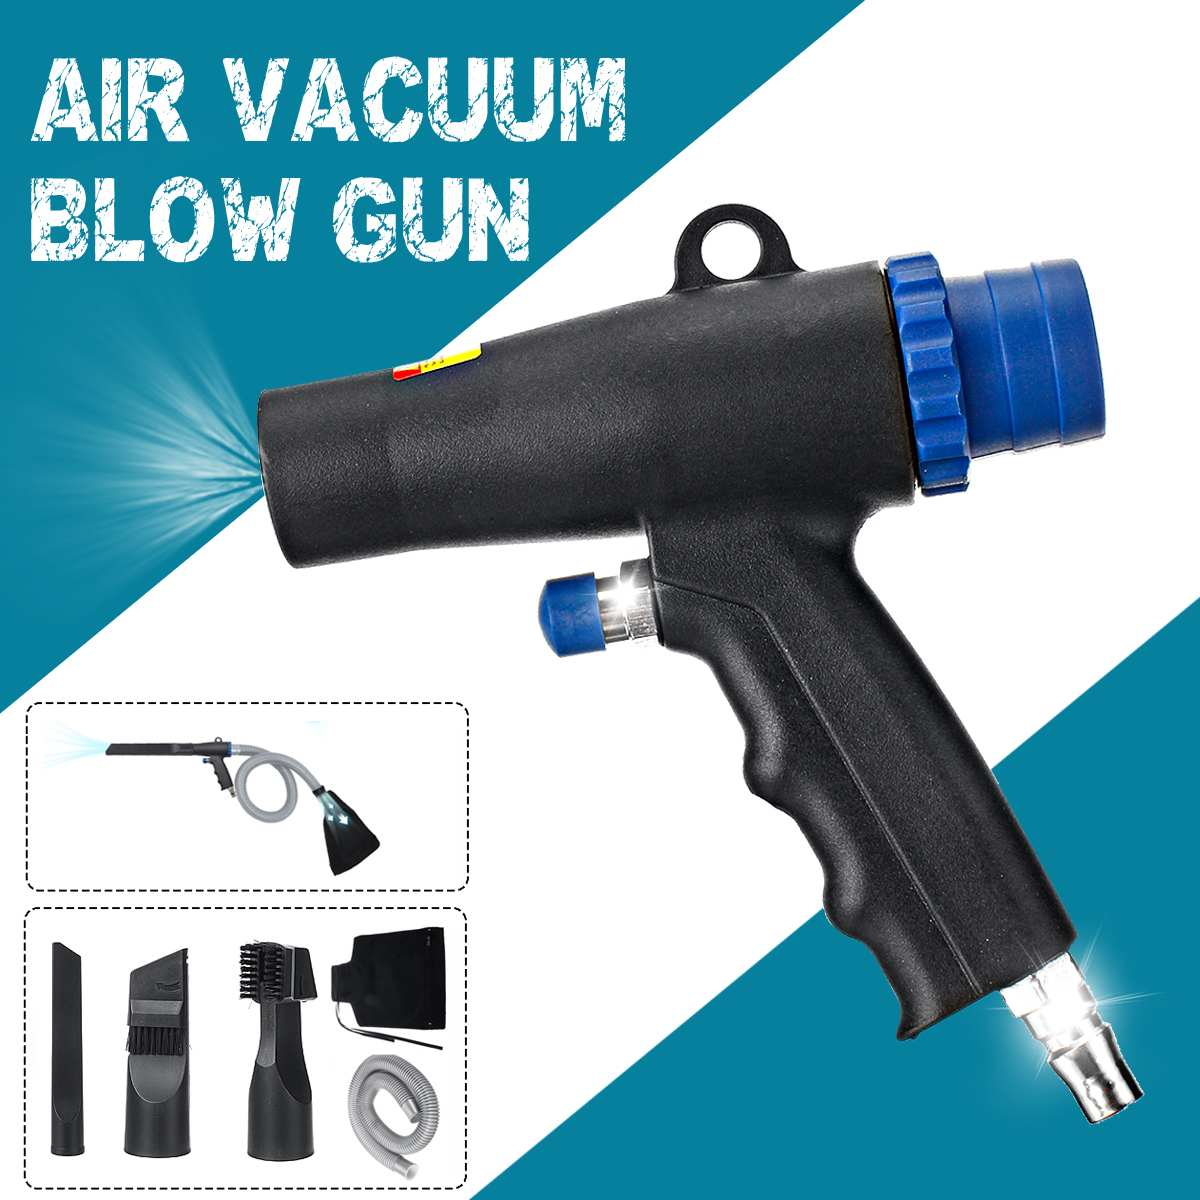 2-in-1-6kpa-10cfm-air-wonder-guns-kit-dual-function-air-vacuum-blow-guns-pneumatic-vacuum-cleaner-tools-air-blow-suction-guns